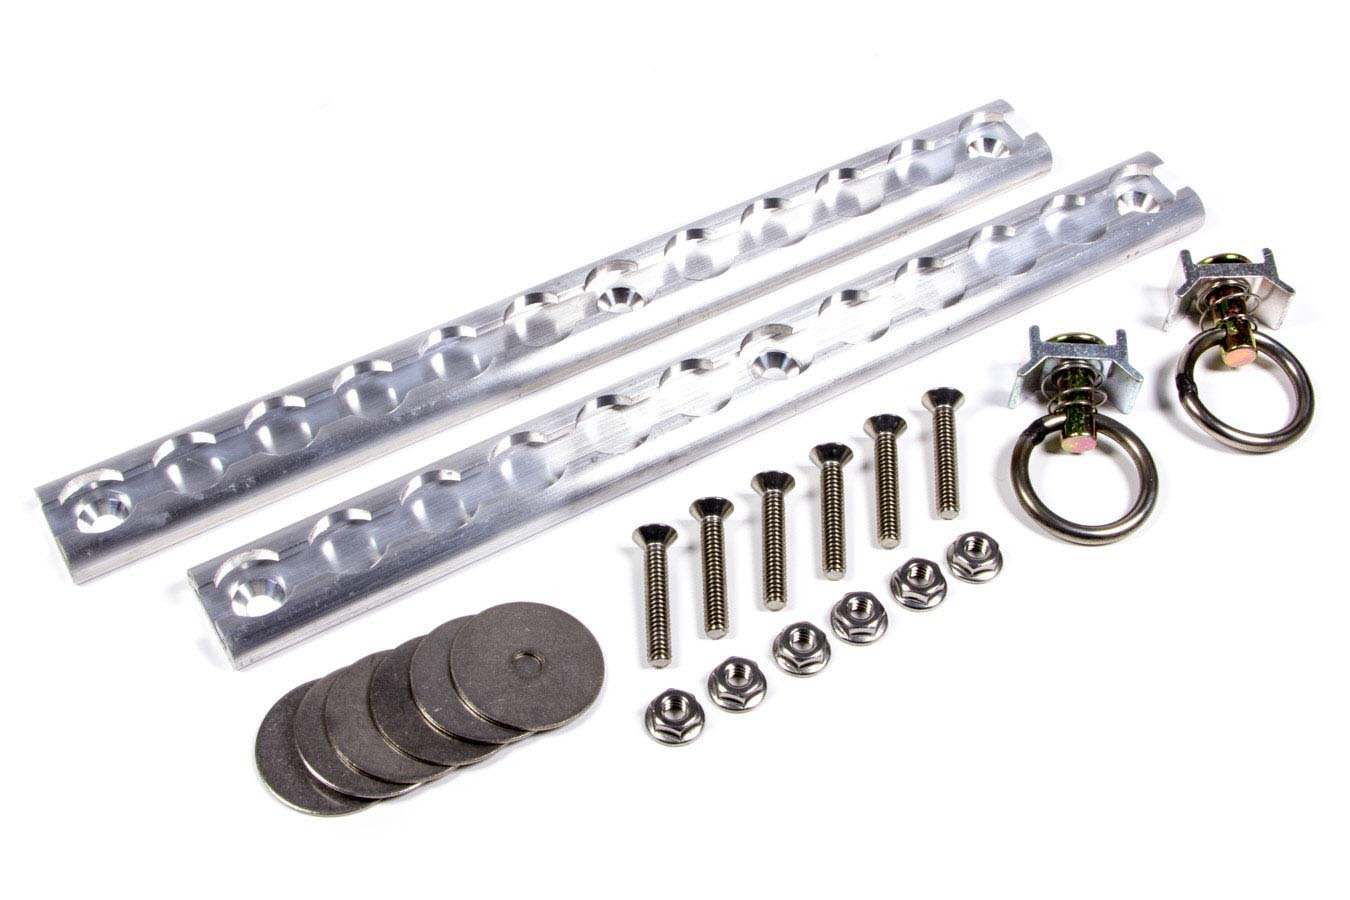 Macs Custom Tie Downs 522112 Tie Down Track Kit, VersaTie, Two 1 ft Long Tracks, Two Ring Tie Downs, Hardware Included, Aluminum / Steel, Natural / Cadmium, Kit